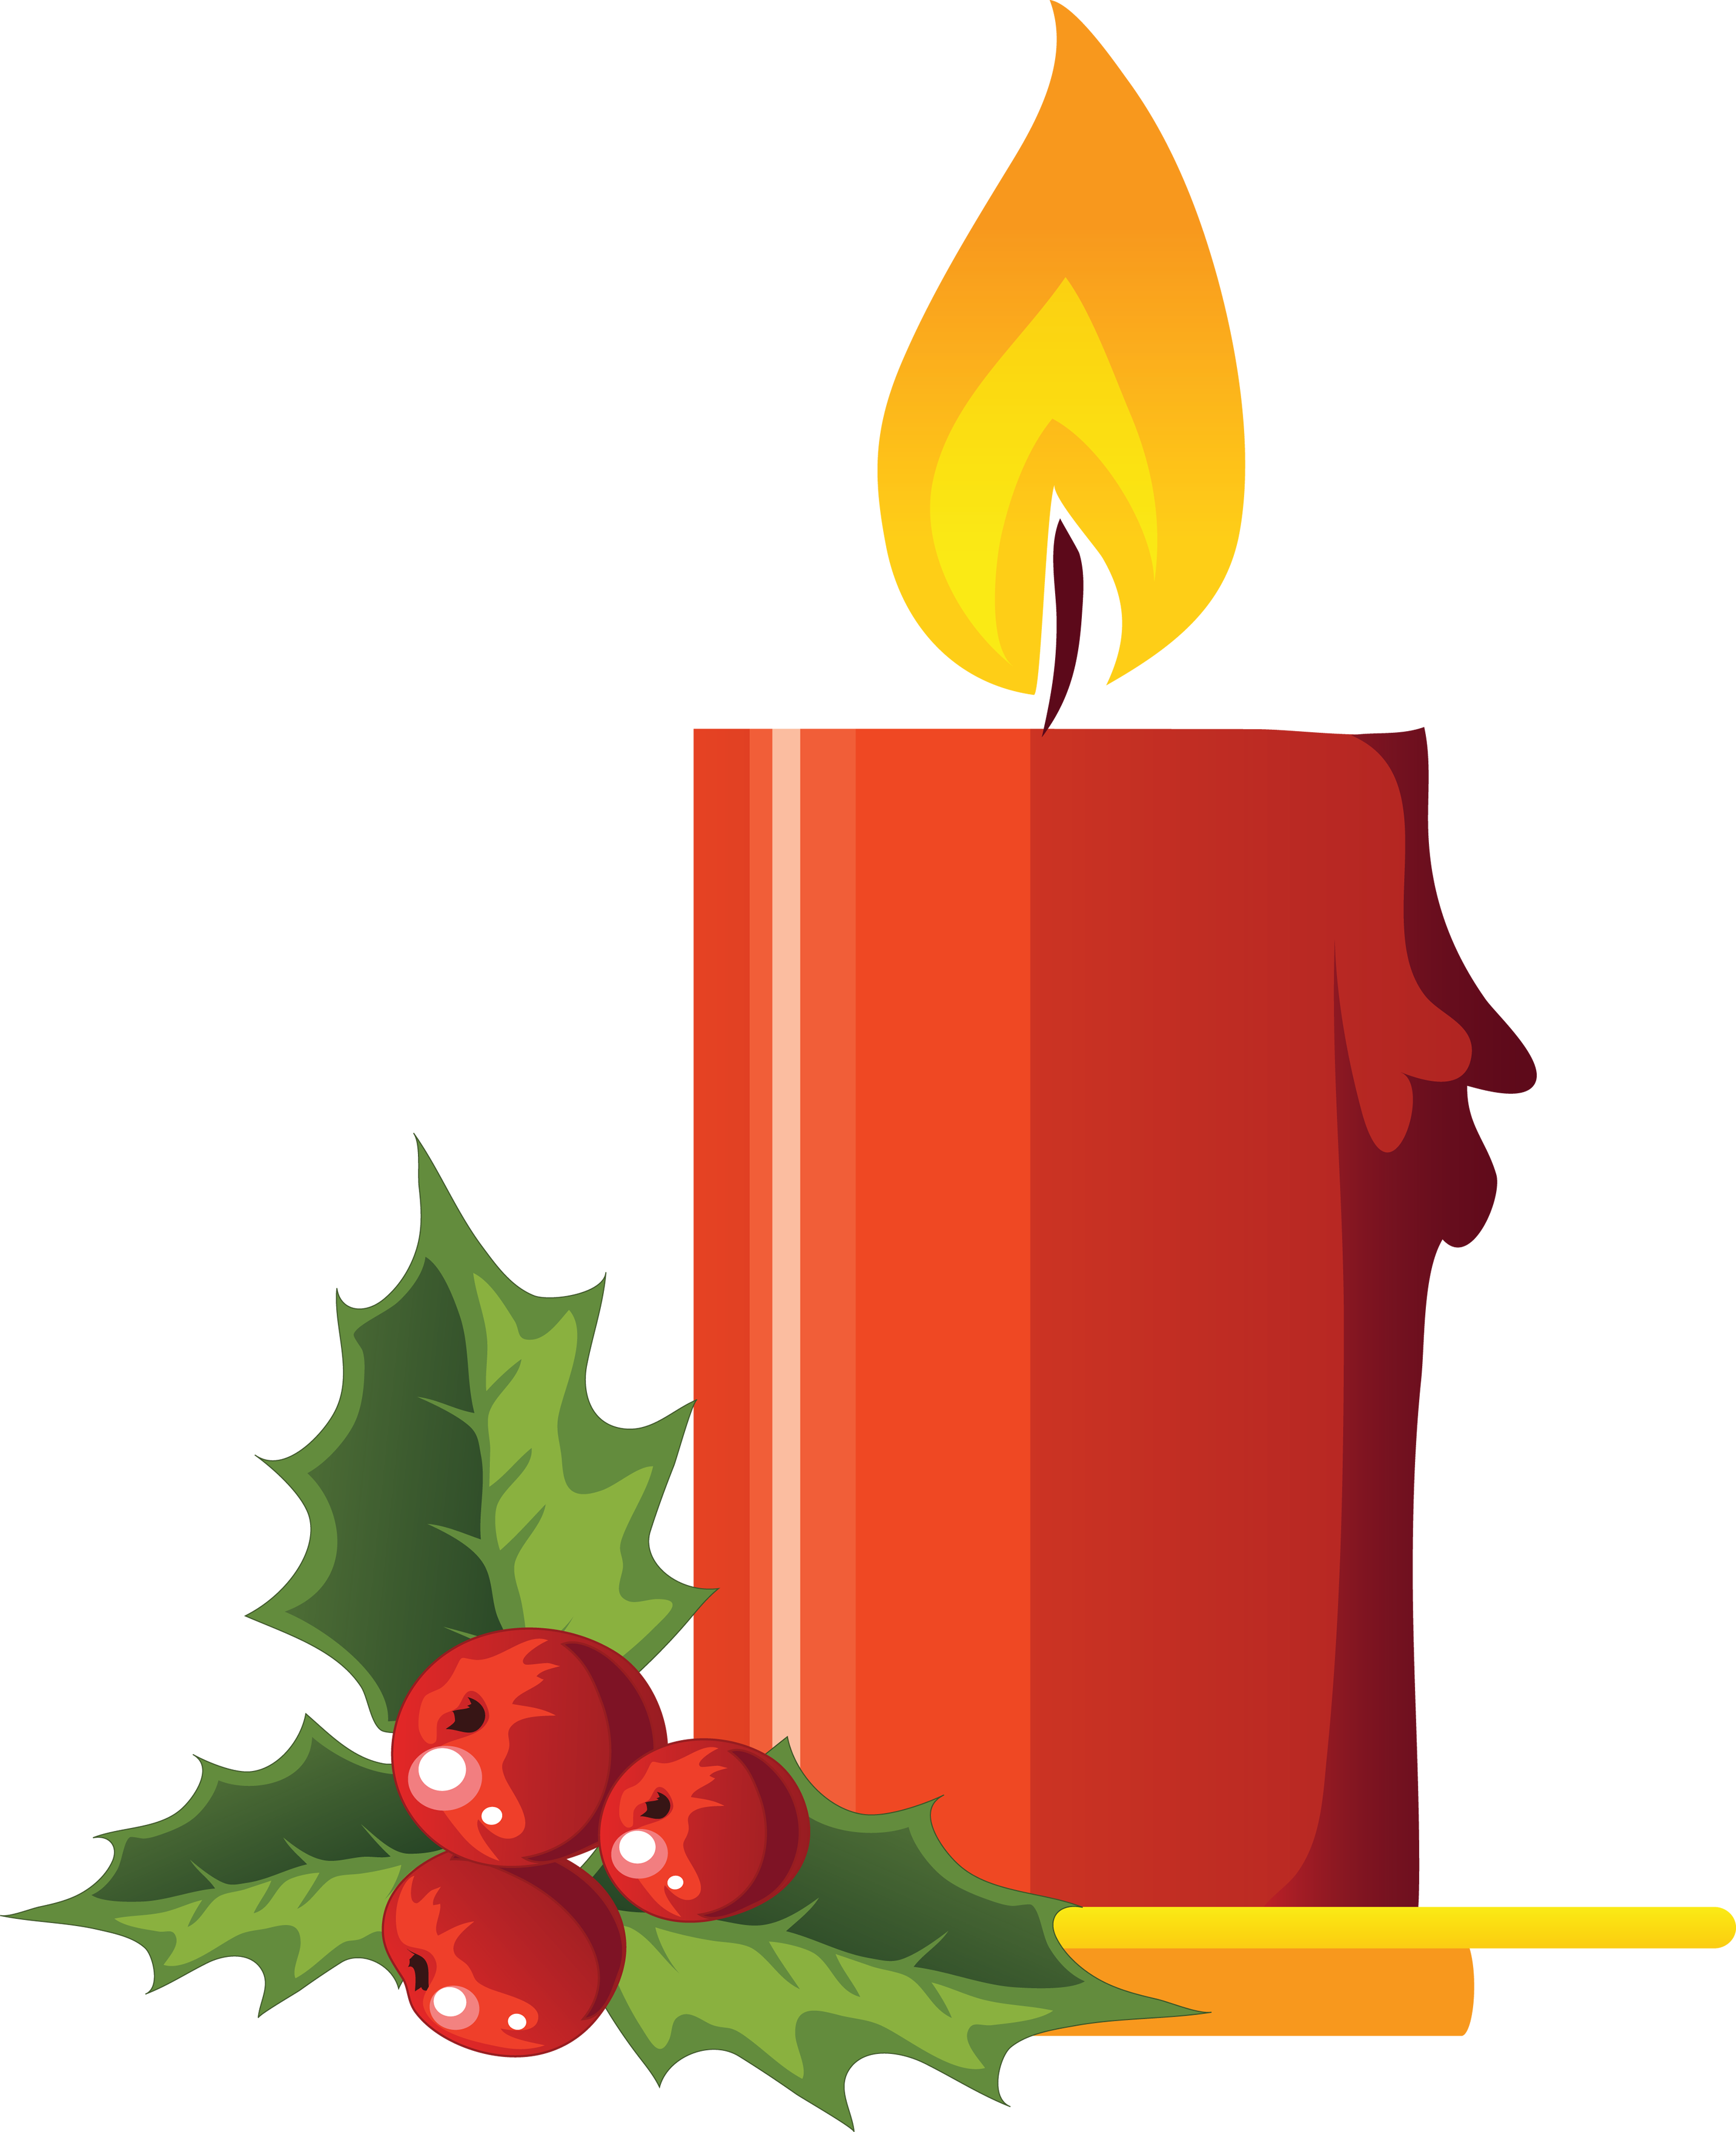 Candles images free download. Clipart png candle